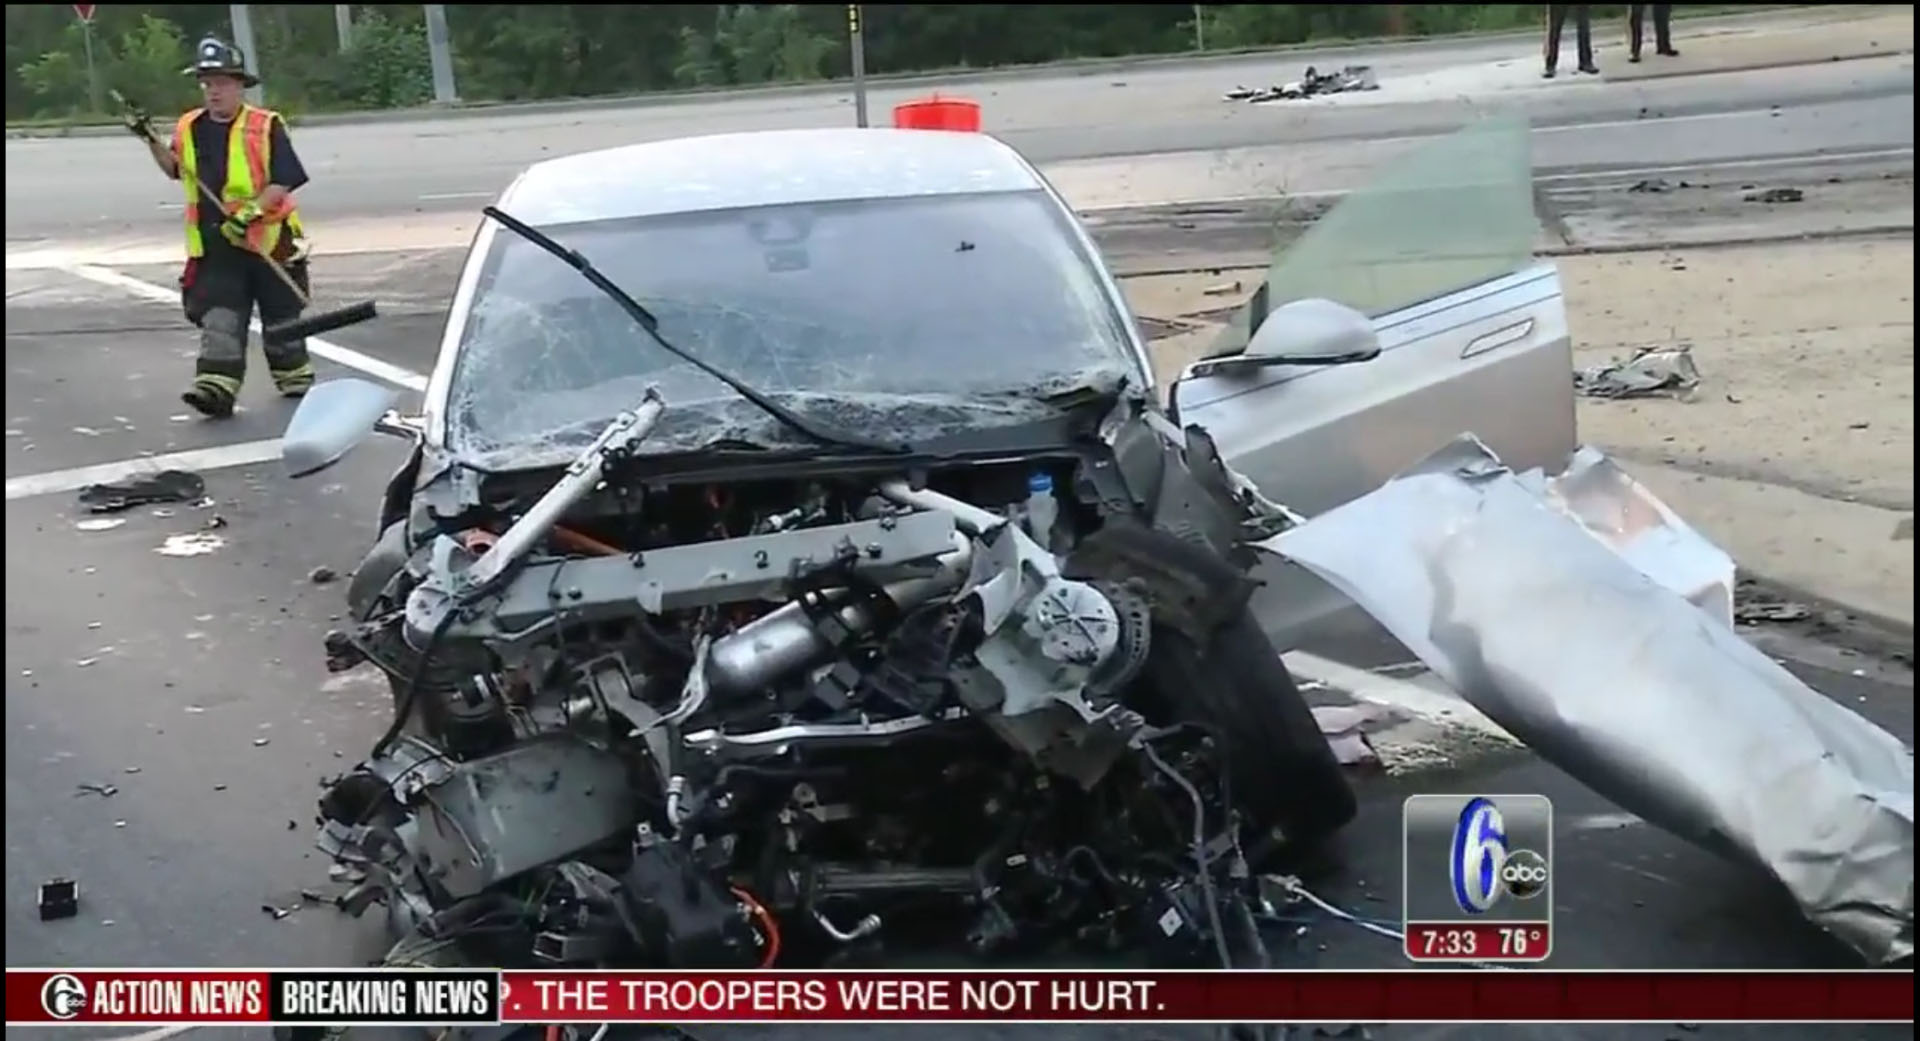 18-Wheeler Pushes Mercedes-Benz For Over 1 Mile on I-35 in